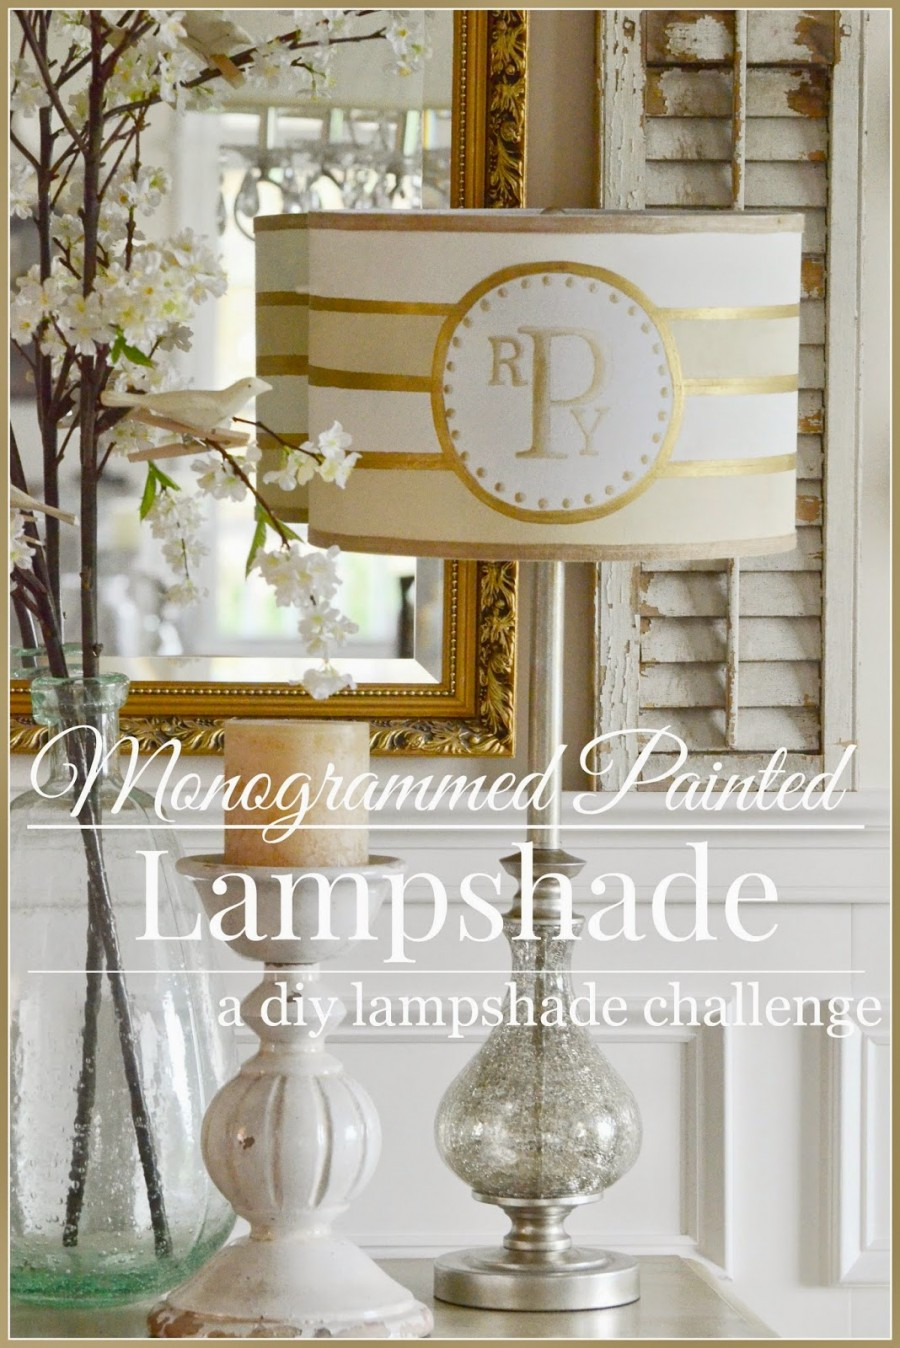 LAMPS.COM DIY LAMPSHADE CHALLENGE~ I NEED YOUR VOTE!